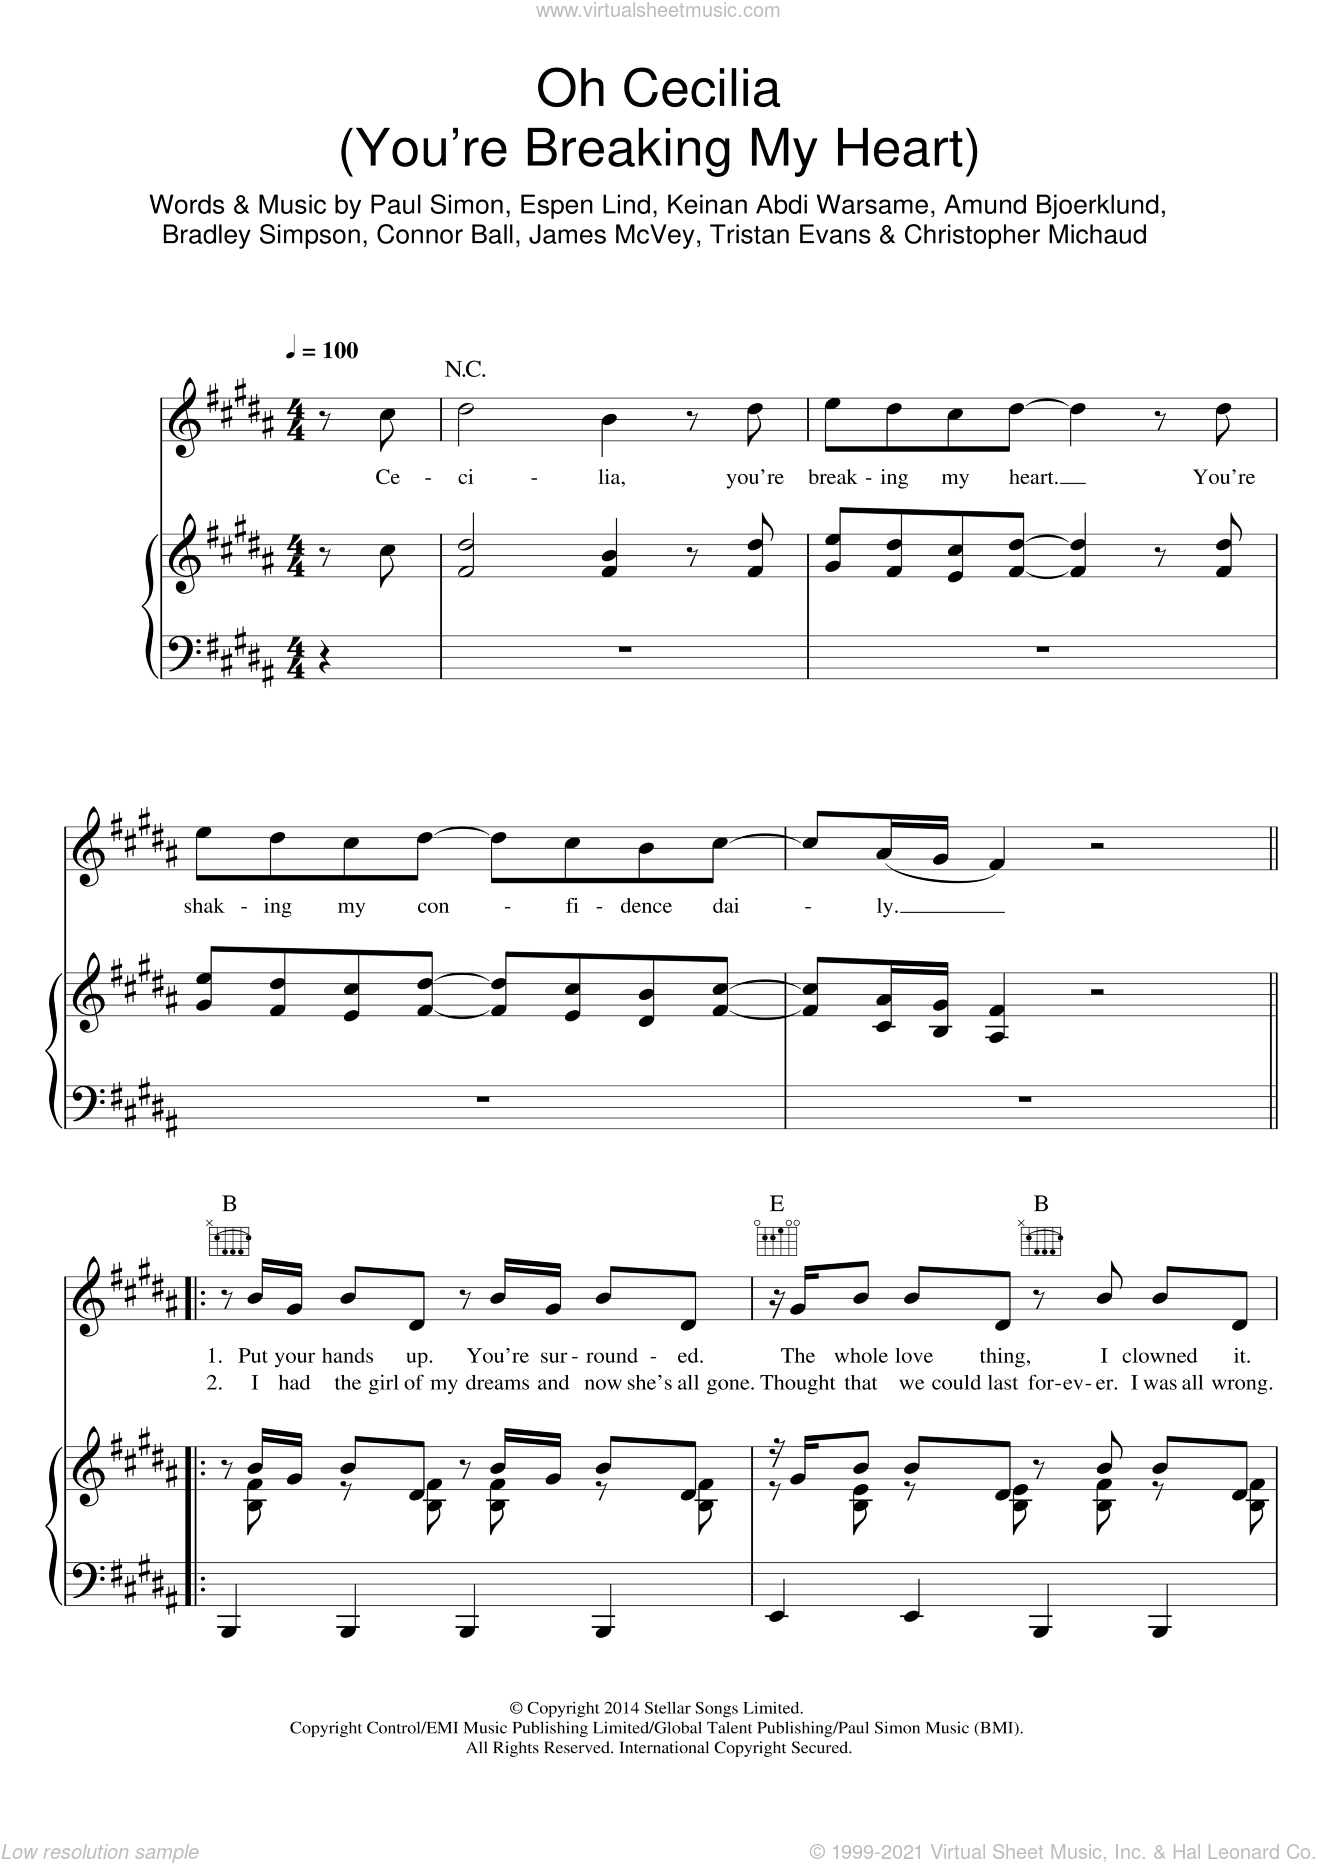 Oh Cecilia (Breaking My Heart) sheet music for voice, piano or guitar by Amund Bjoerklund, Paul Simon and Tristan Evans. Score Image Preview.